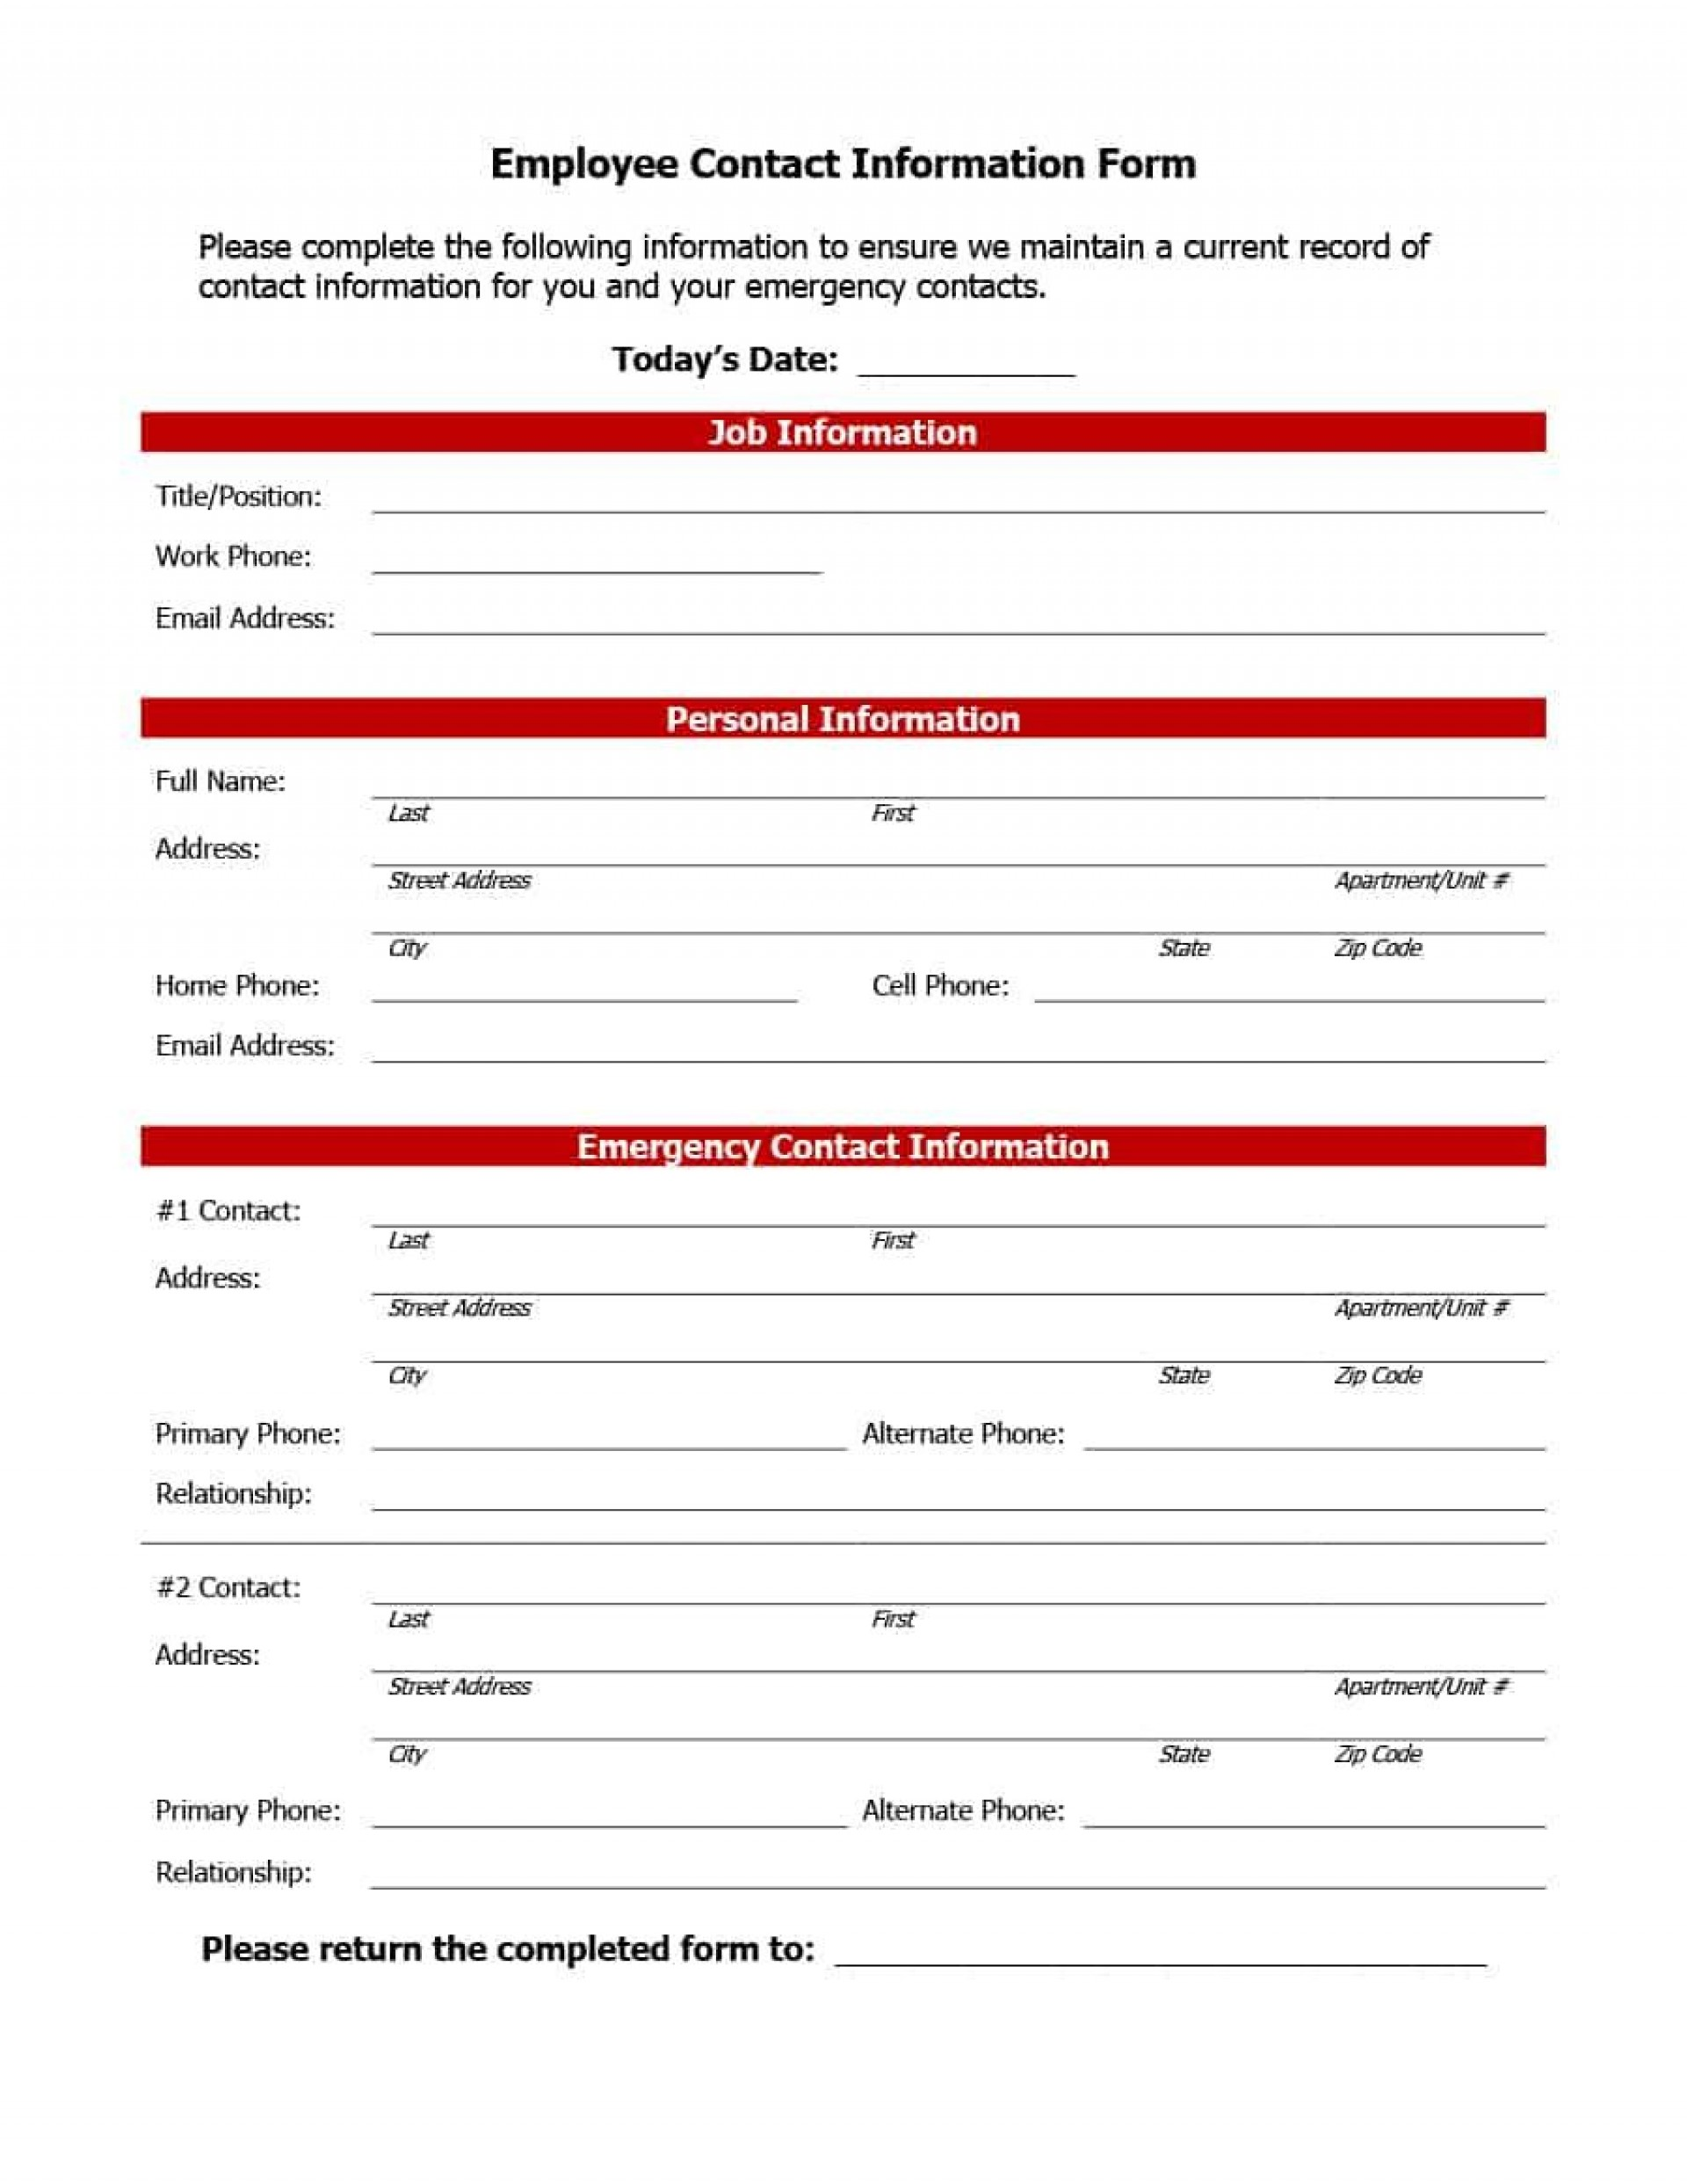 007 Outstanding Travel Emergency Contact Card Template High Resolution 1920